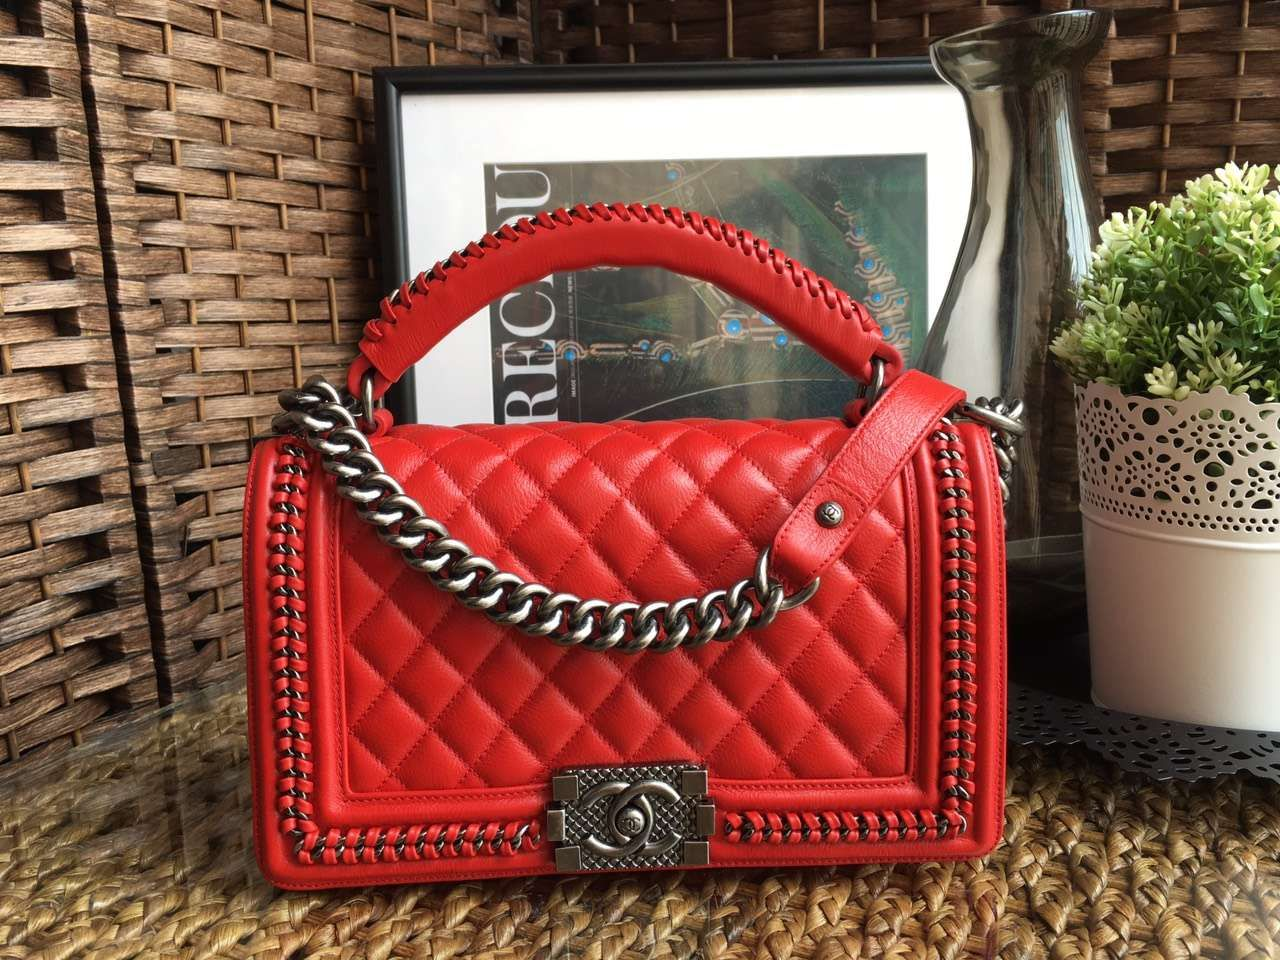 chanel Bag, ID : 58654(FORSALE:a@yybags.com), chanel discount handbags, chanel bags on sale online, usa chanel, chanel business briefcase, chanel purse designers, chanel bags on sale, chanel nylon backpack, latest chanel, chanel top designer handbags, chanel pink handbags, chanel bag buy, design chanel, chanel leather purse sale #chanelBag #chanel #chanel #buy #backpack